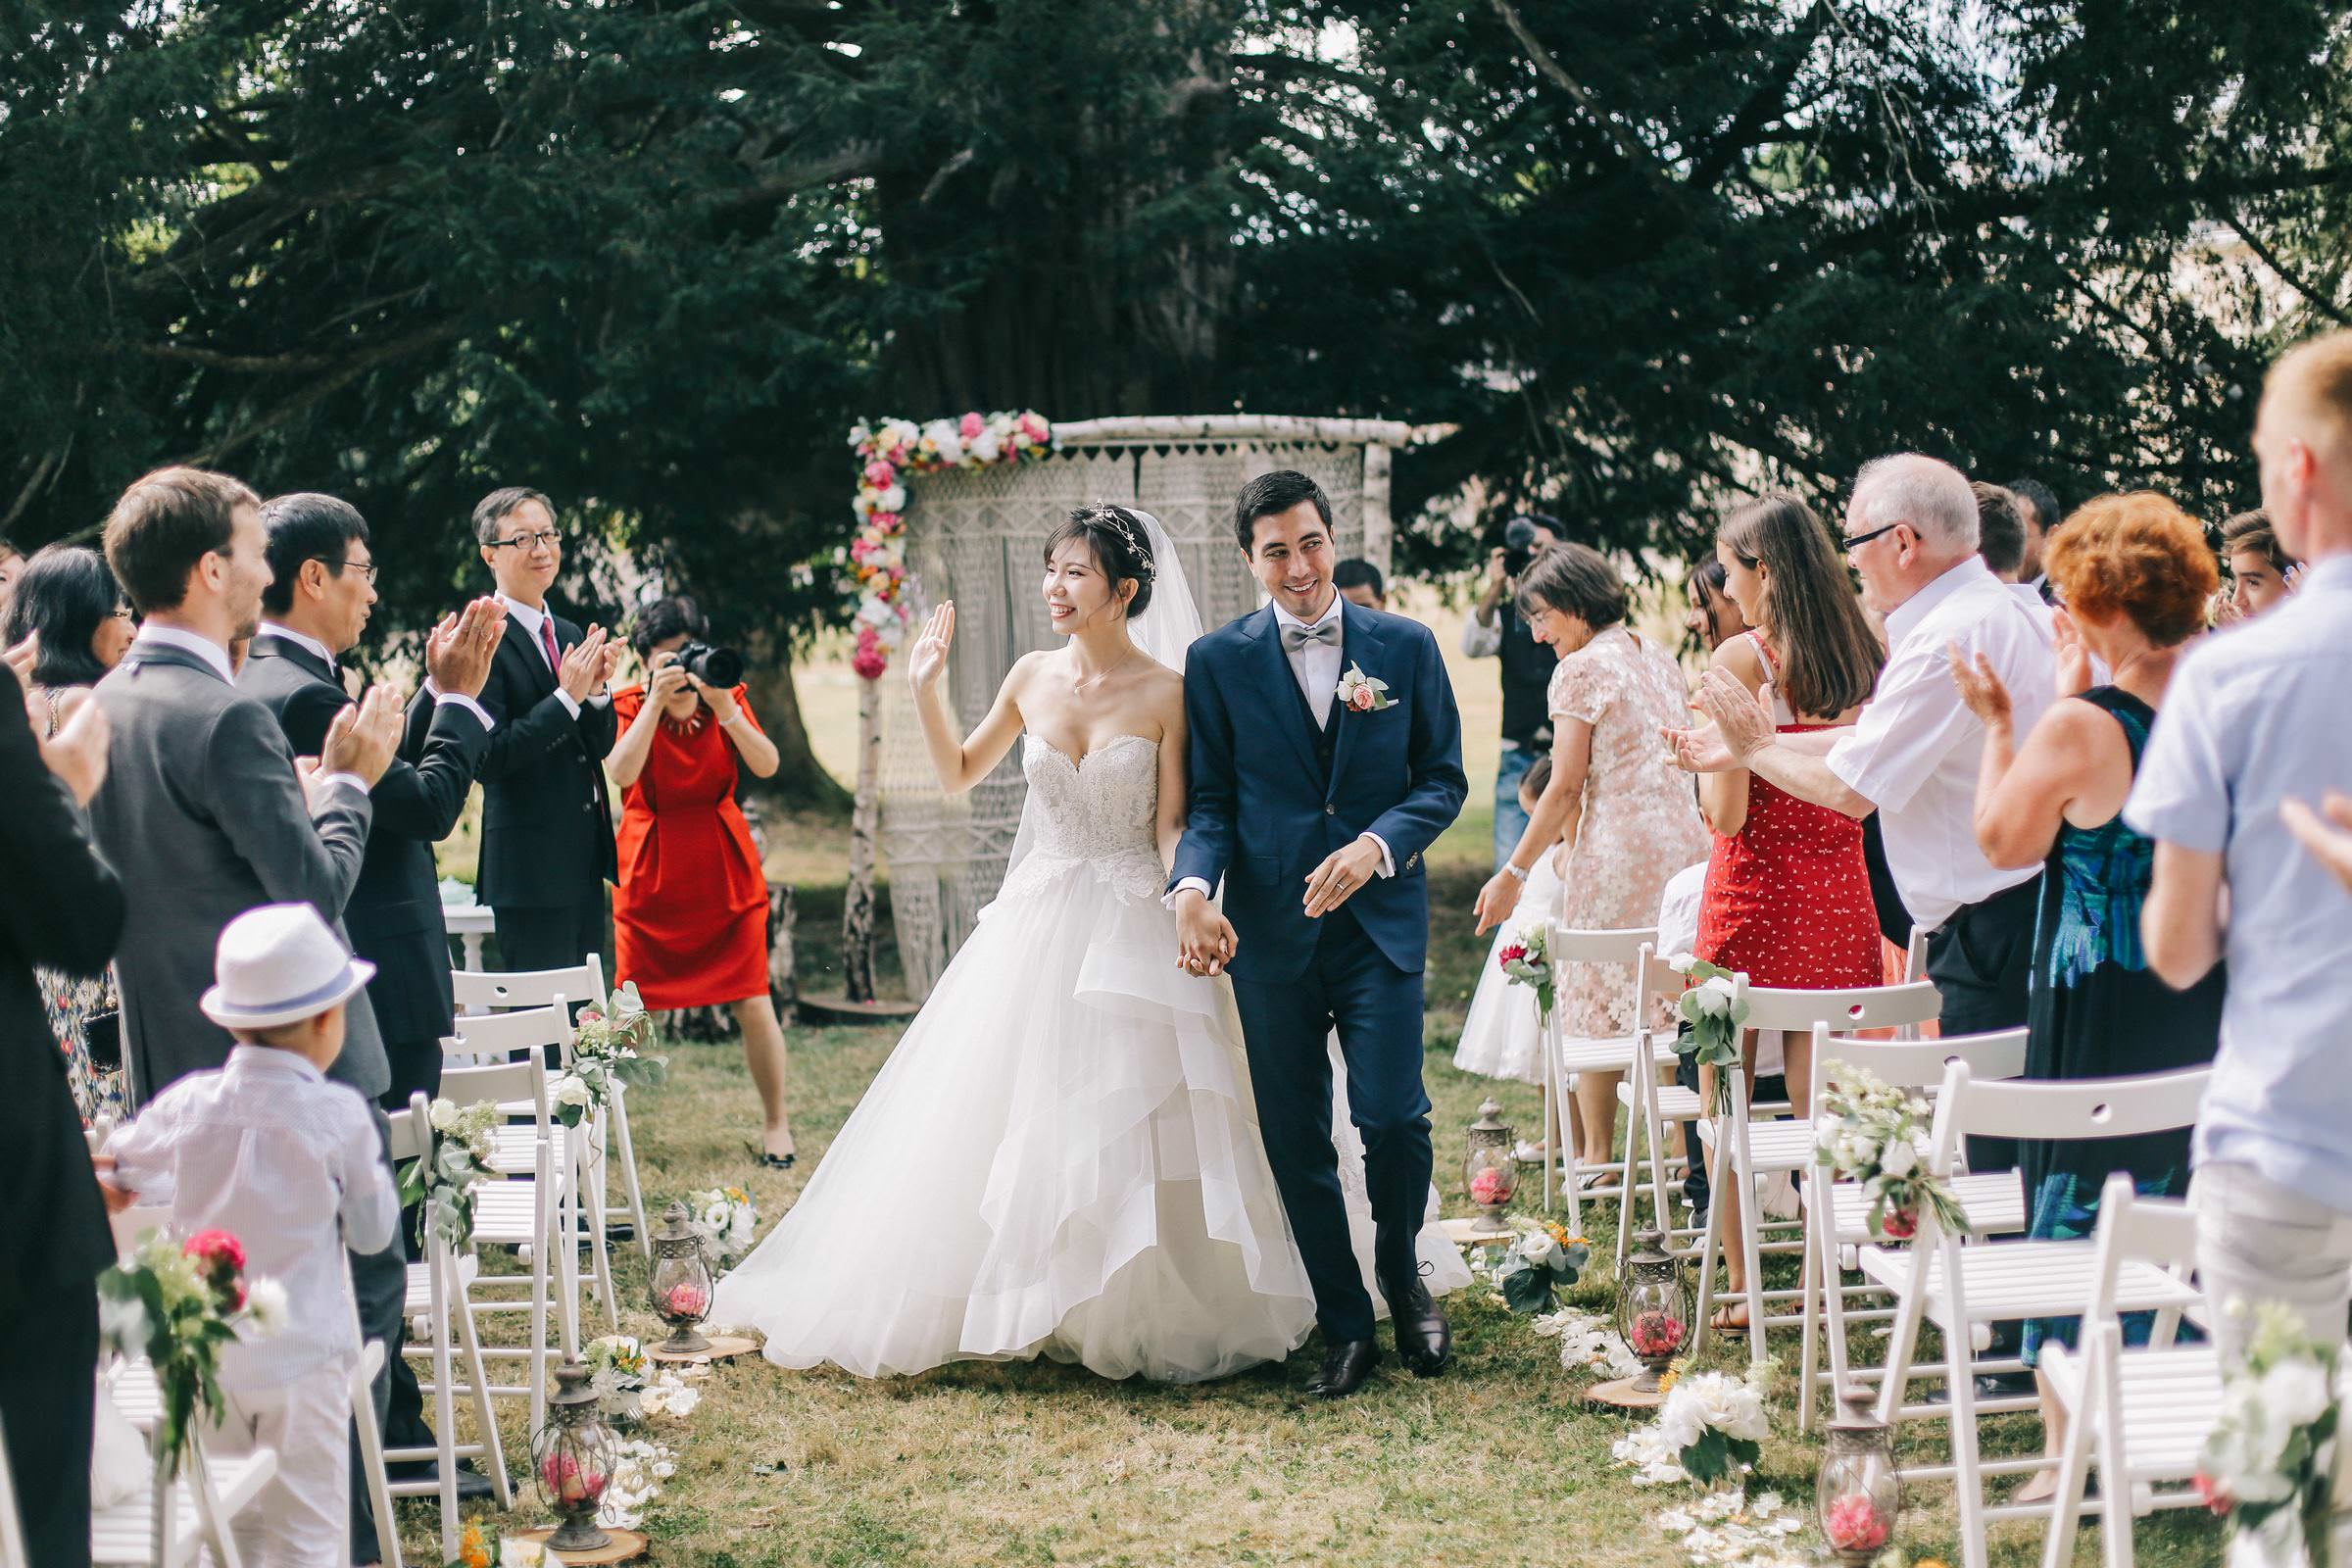 Outdoor couple recessional - photo by Amandine Ropars